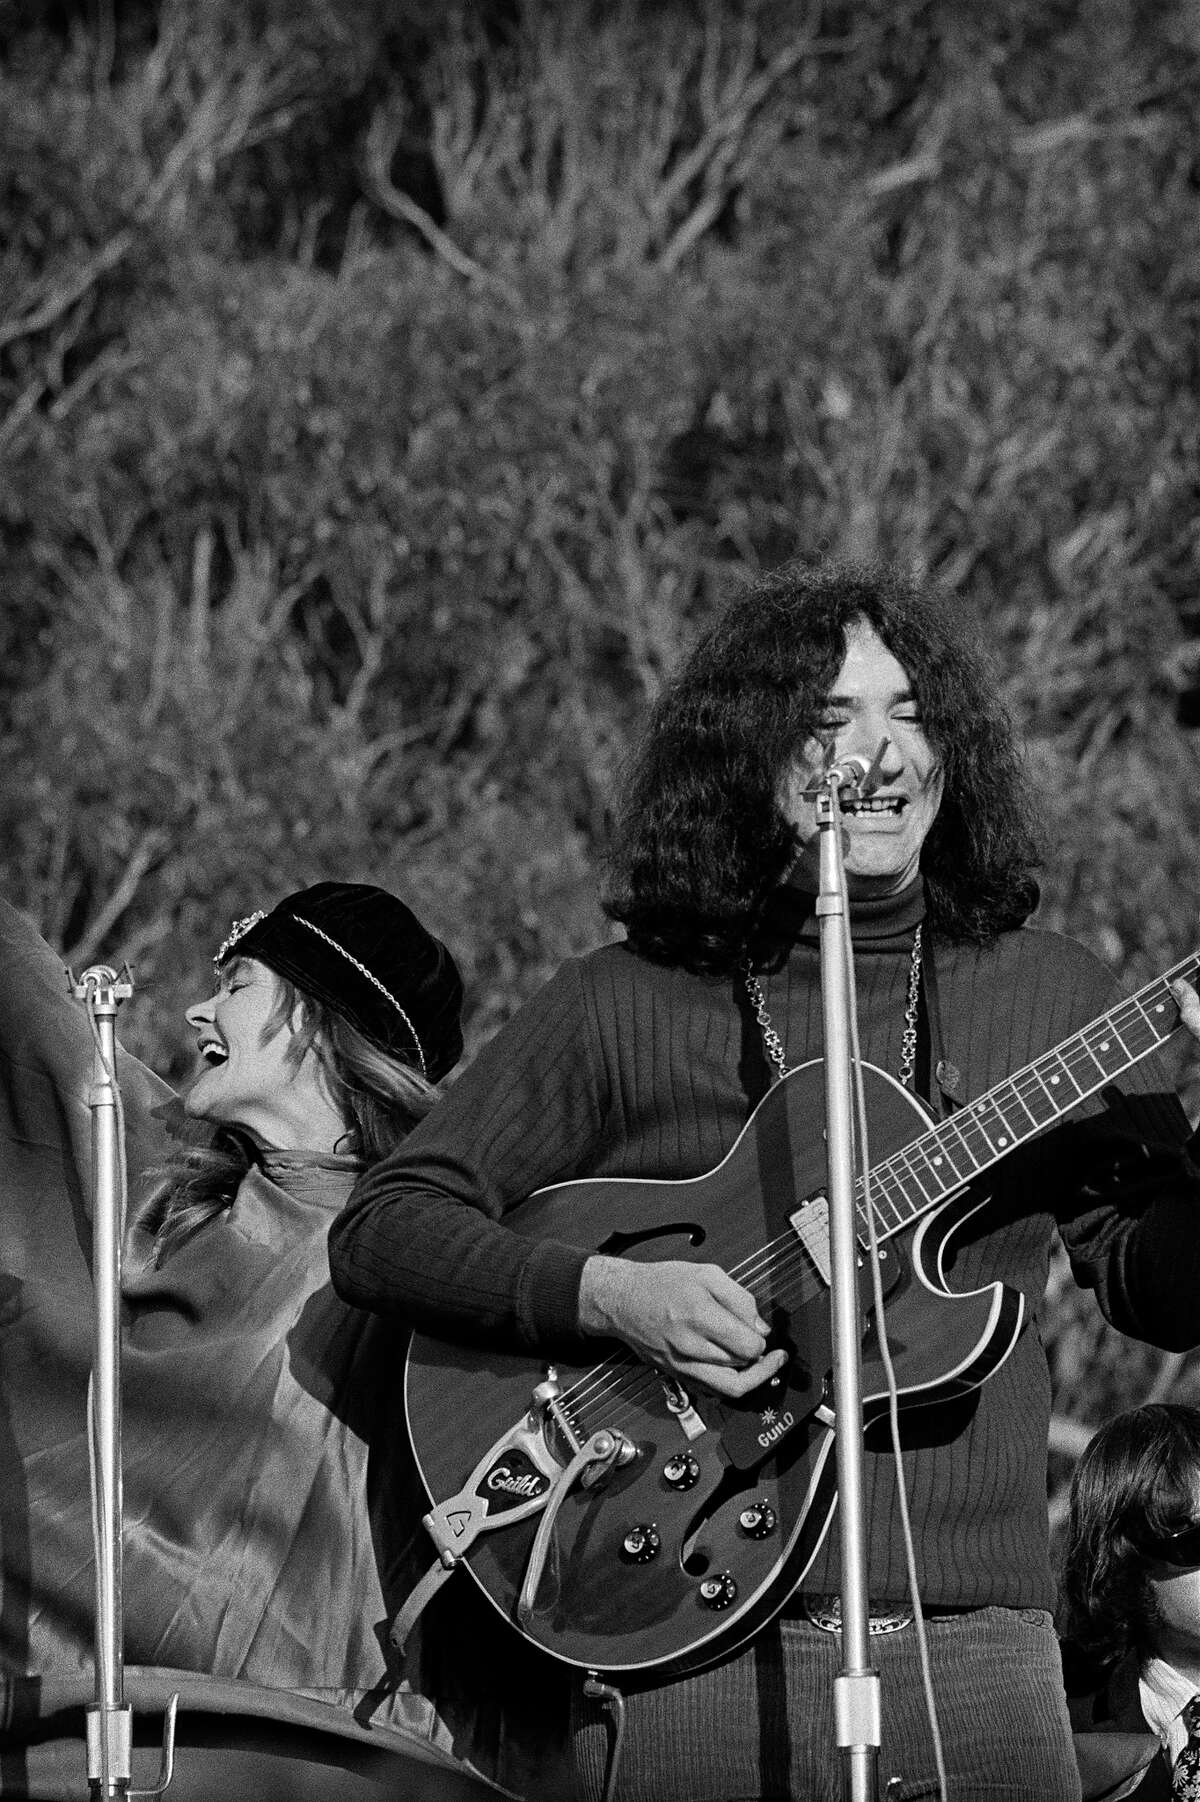 Jerry Garcia, right, and Donna Jean Godchaux of the Grateful Dead perform at the Human Be-In at the Polo Fields in Golden Gate Park in 1967.